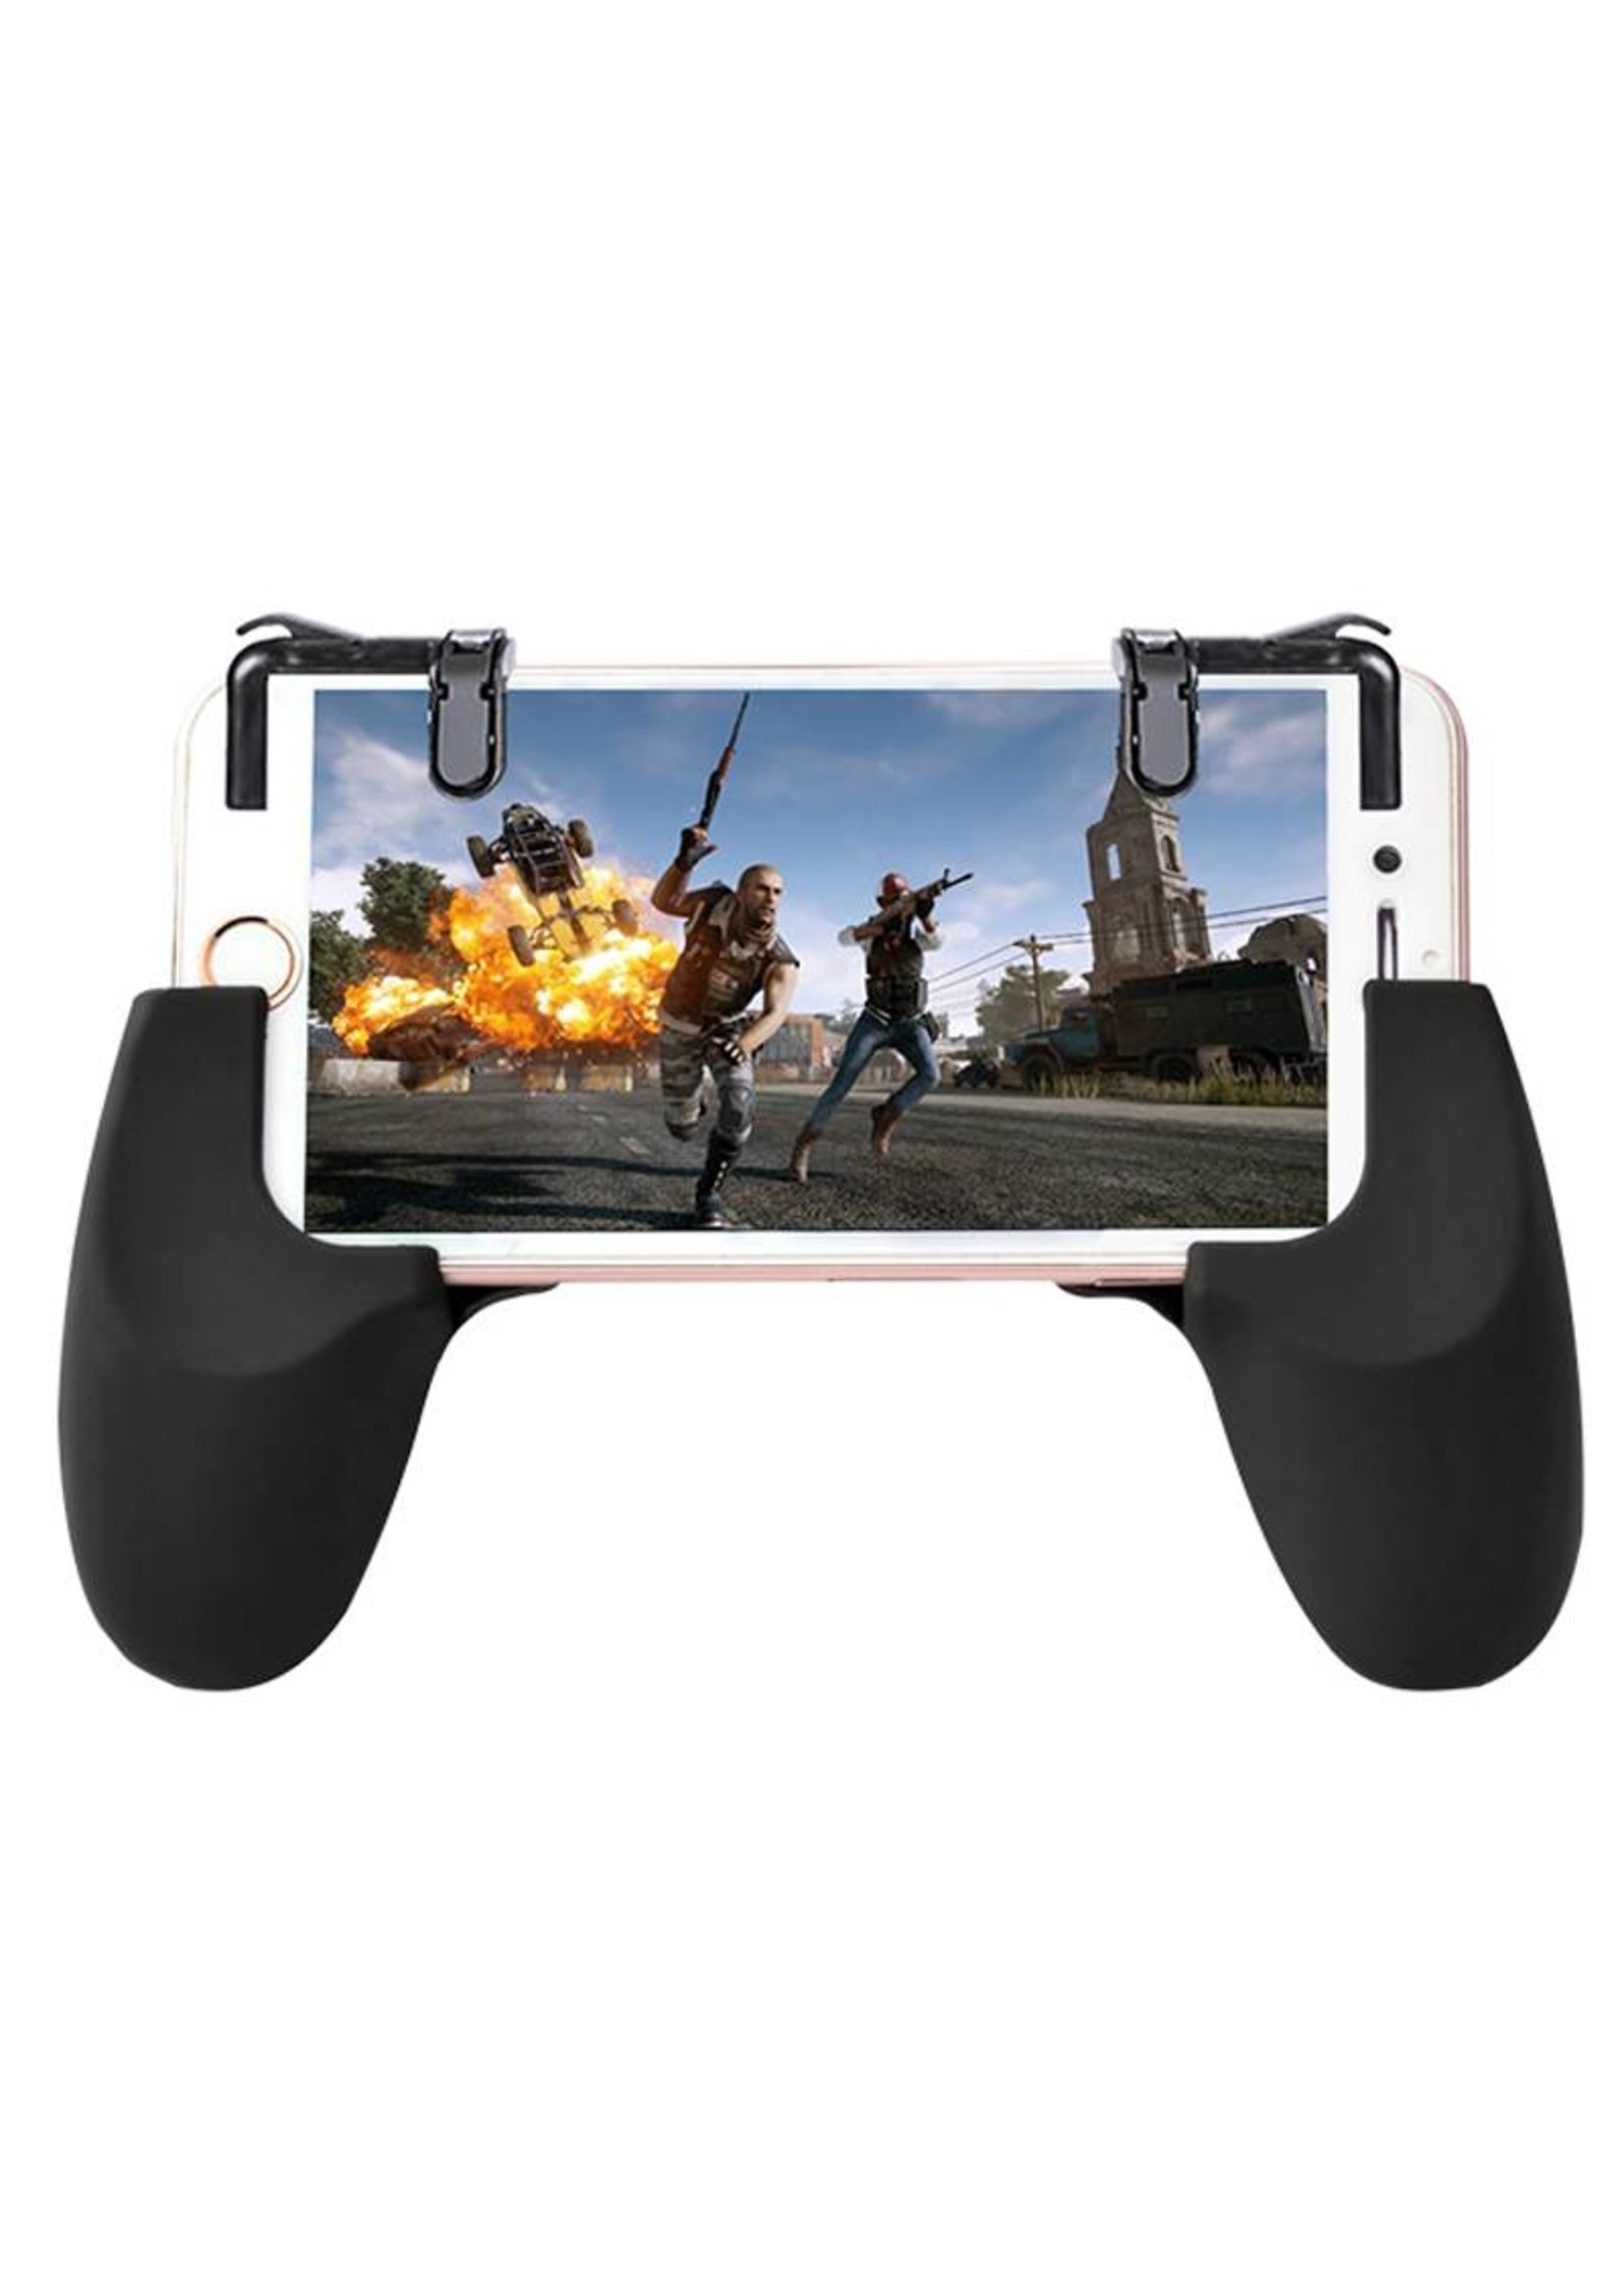 L1R1 L2R2 Mobile Game 4 Trigger Gamepad Controller w/ Cooling